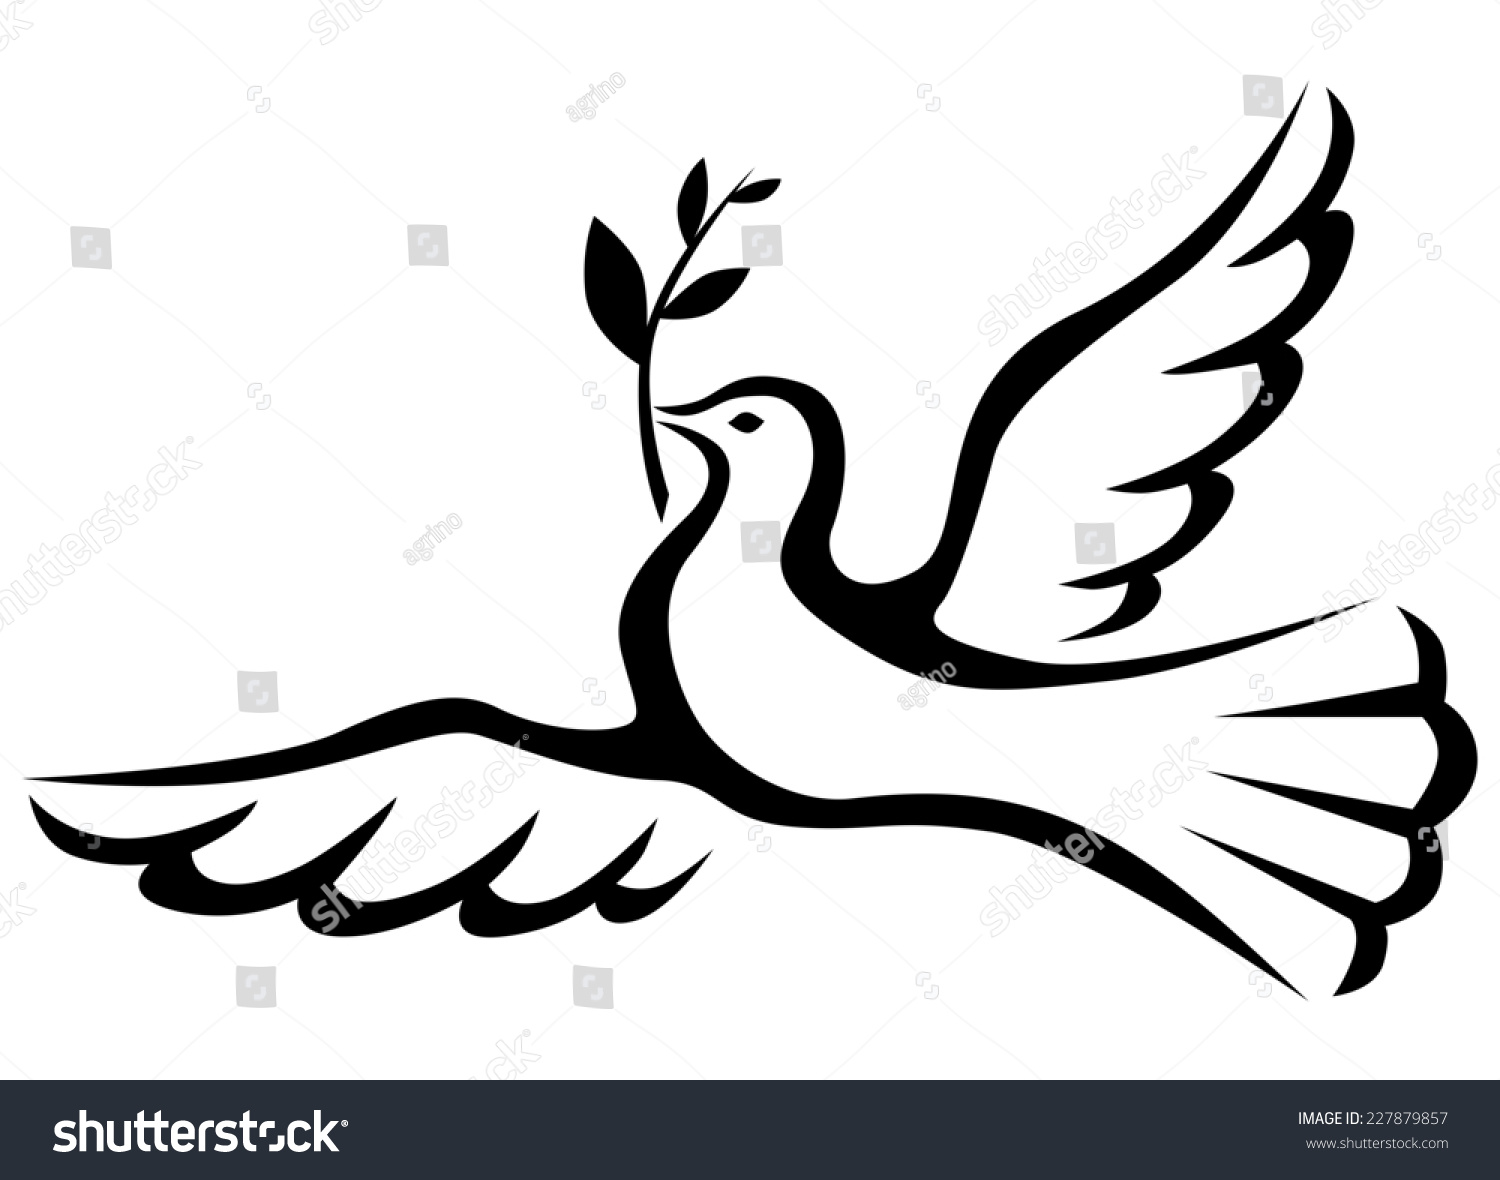 Royalty Free Stock Illustration Of Symbol Peace Dove Palm Branch